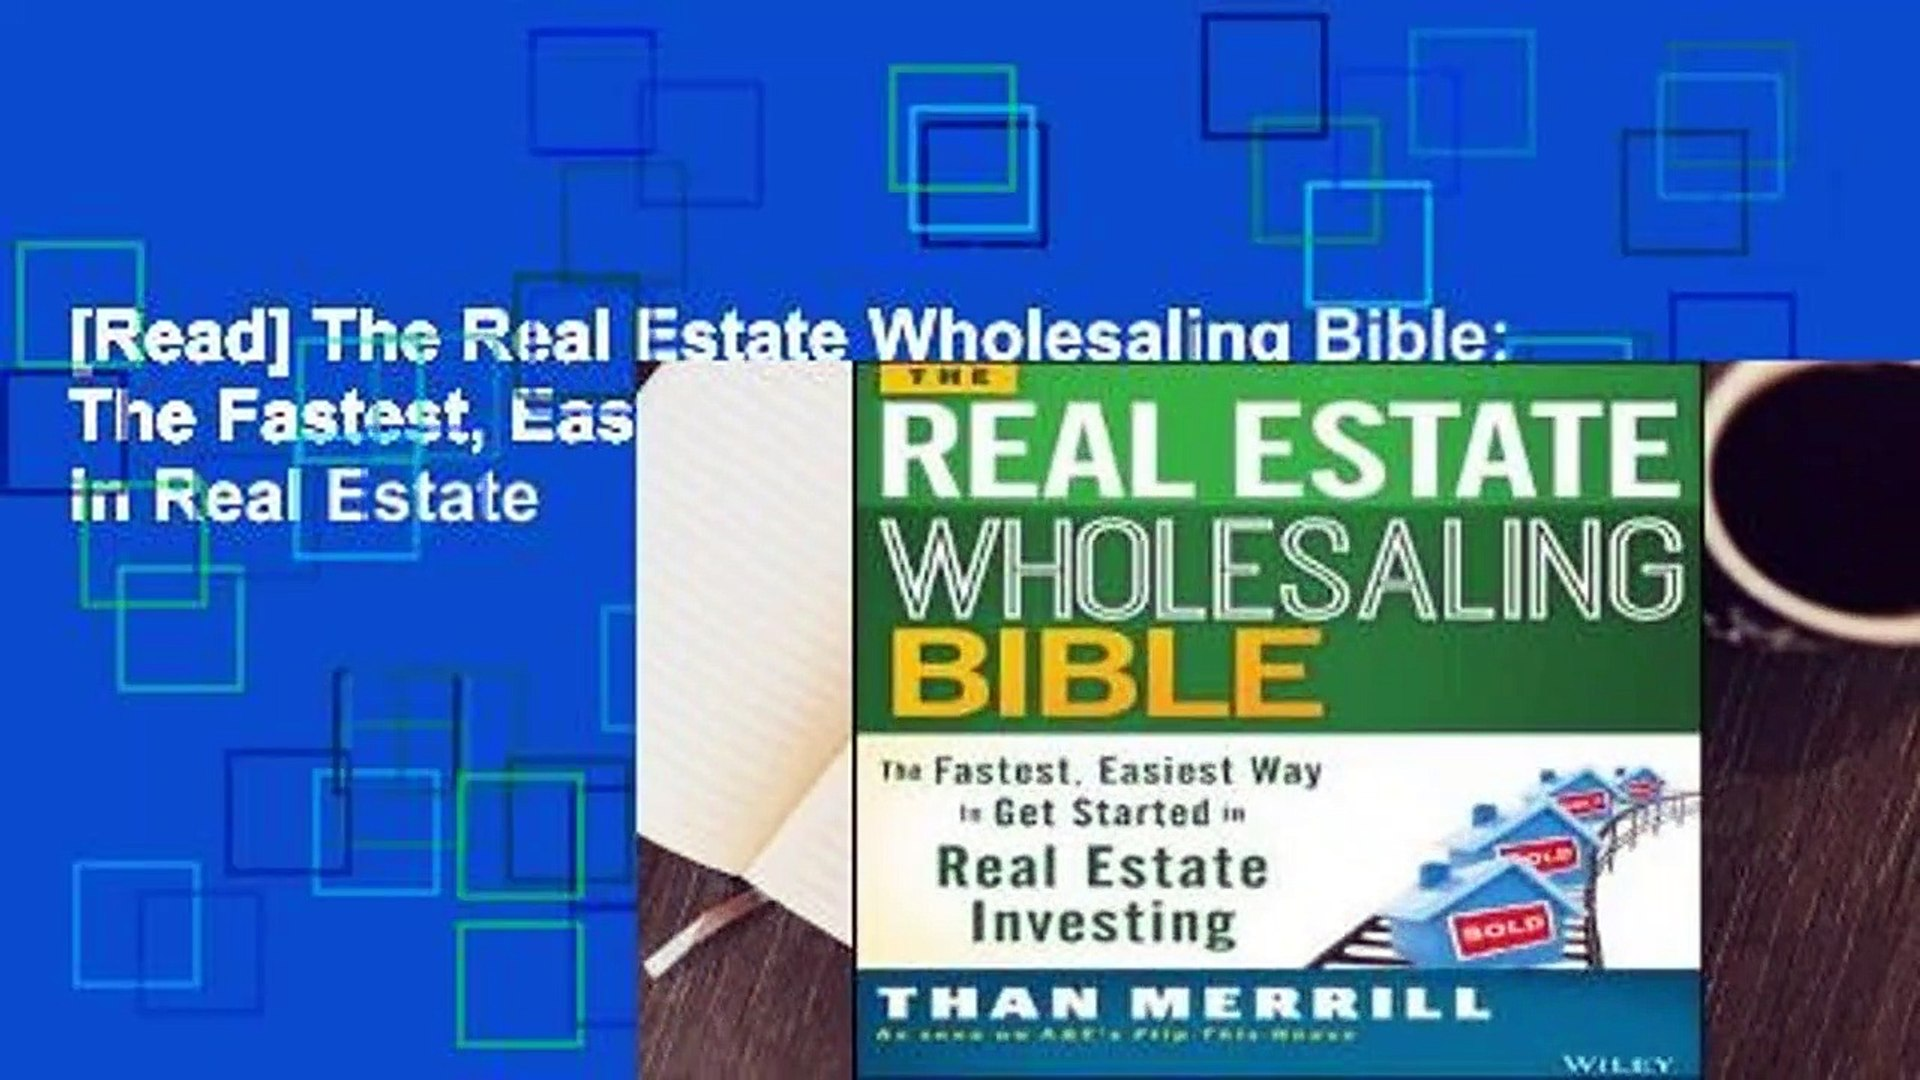 [Read] The Real Estate Wholesaling Bible: The Fastest, Easiest Way to Get Started in Real Estate